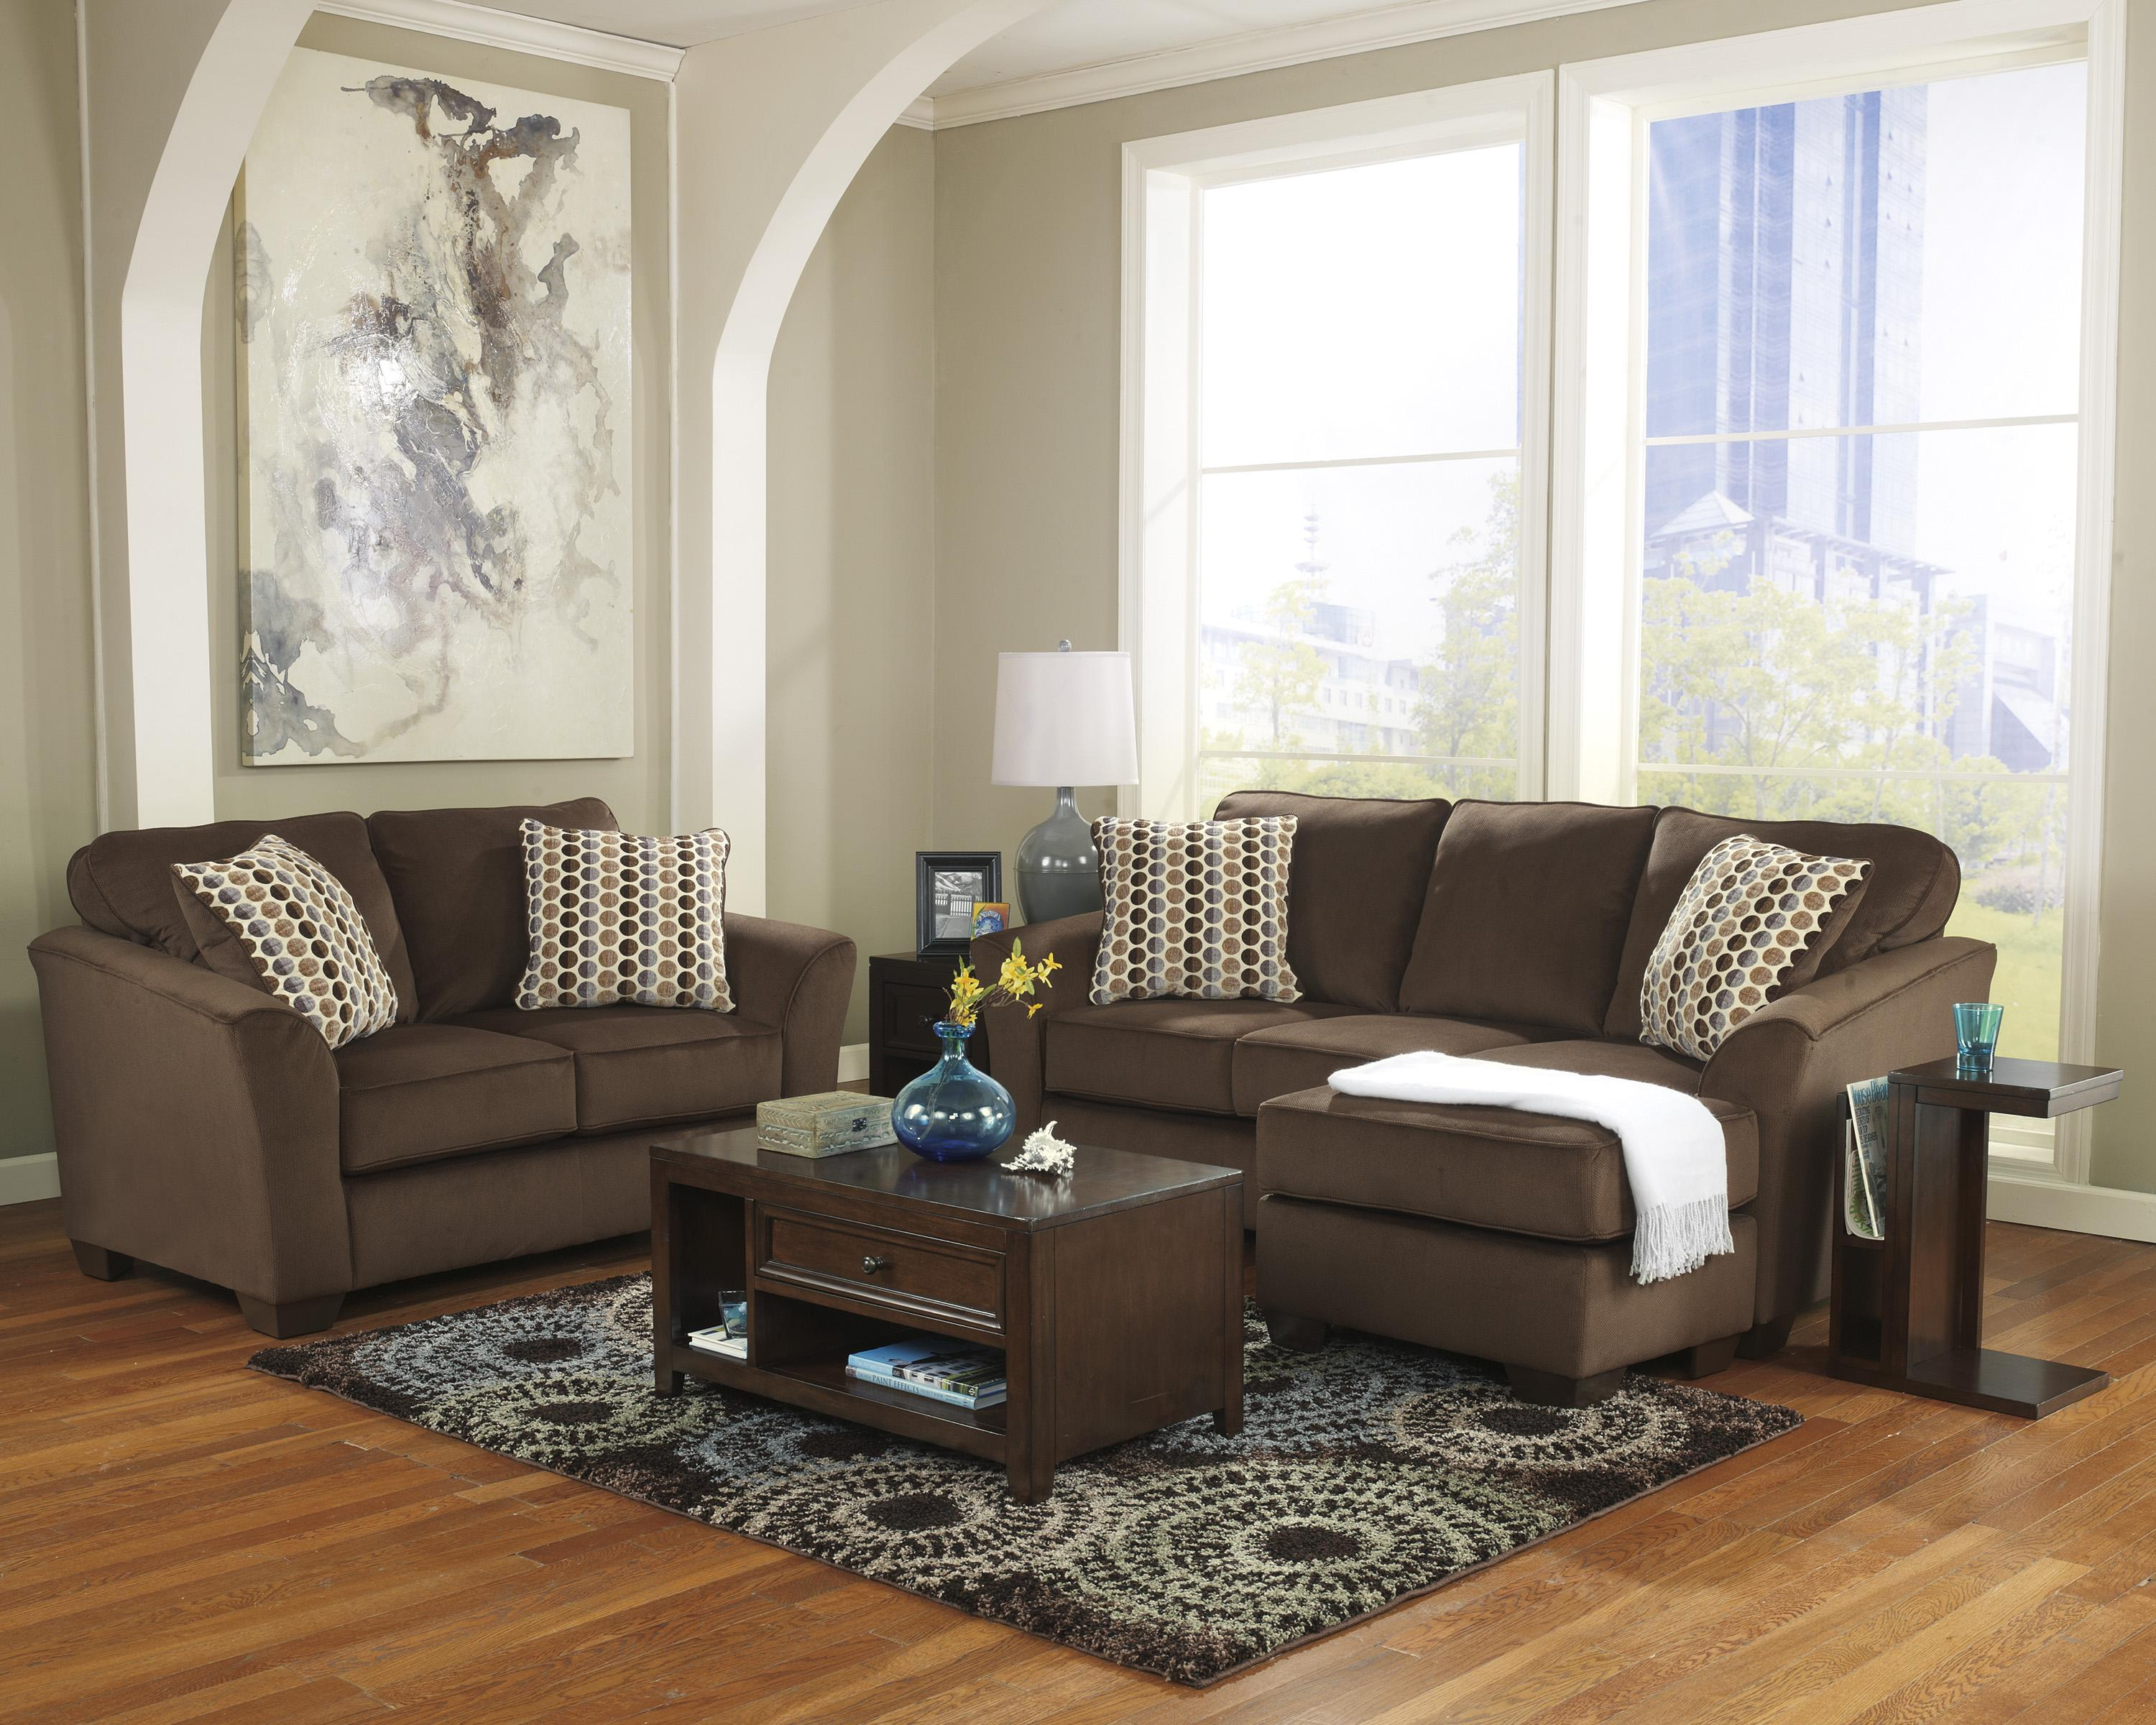 Ashley furniture geordie cafe 2350018 contemporary sofa for Divan vs chaise